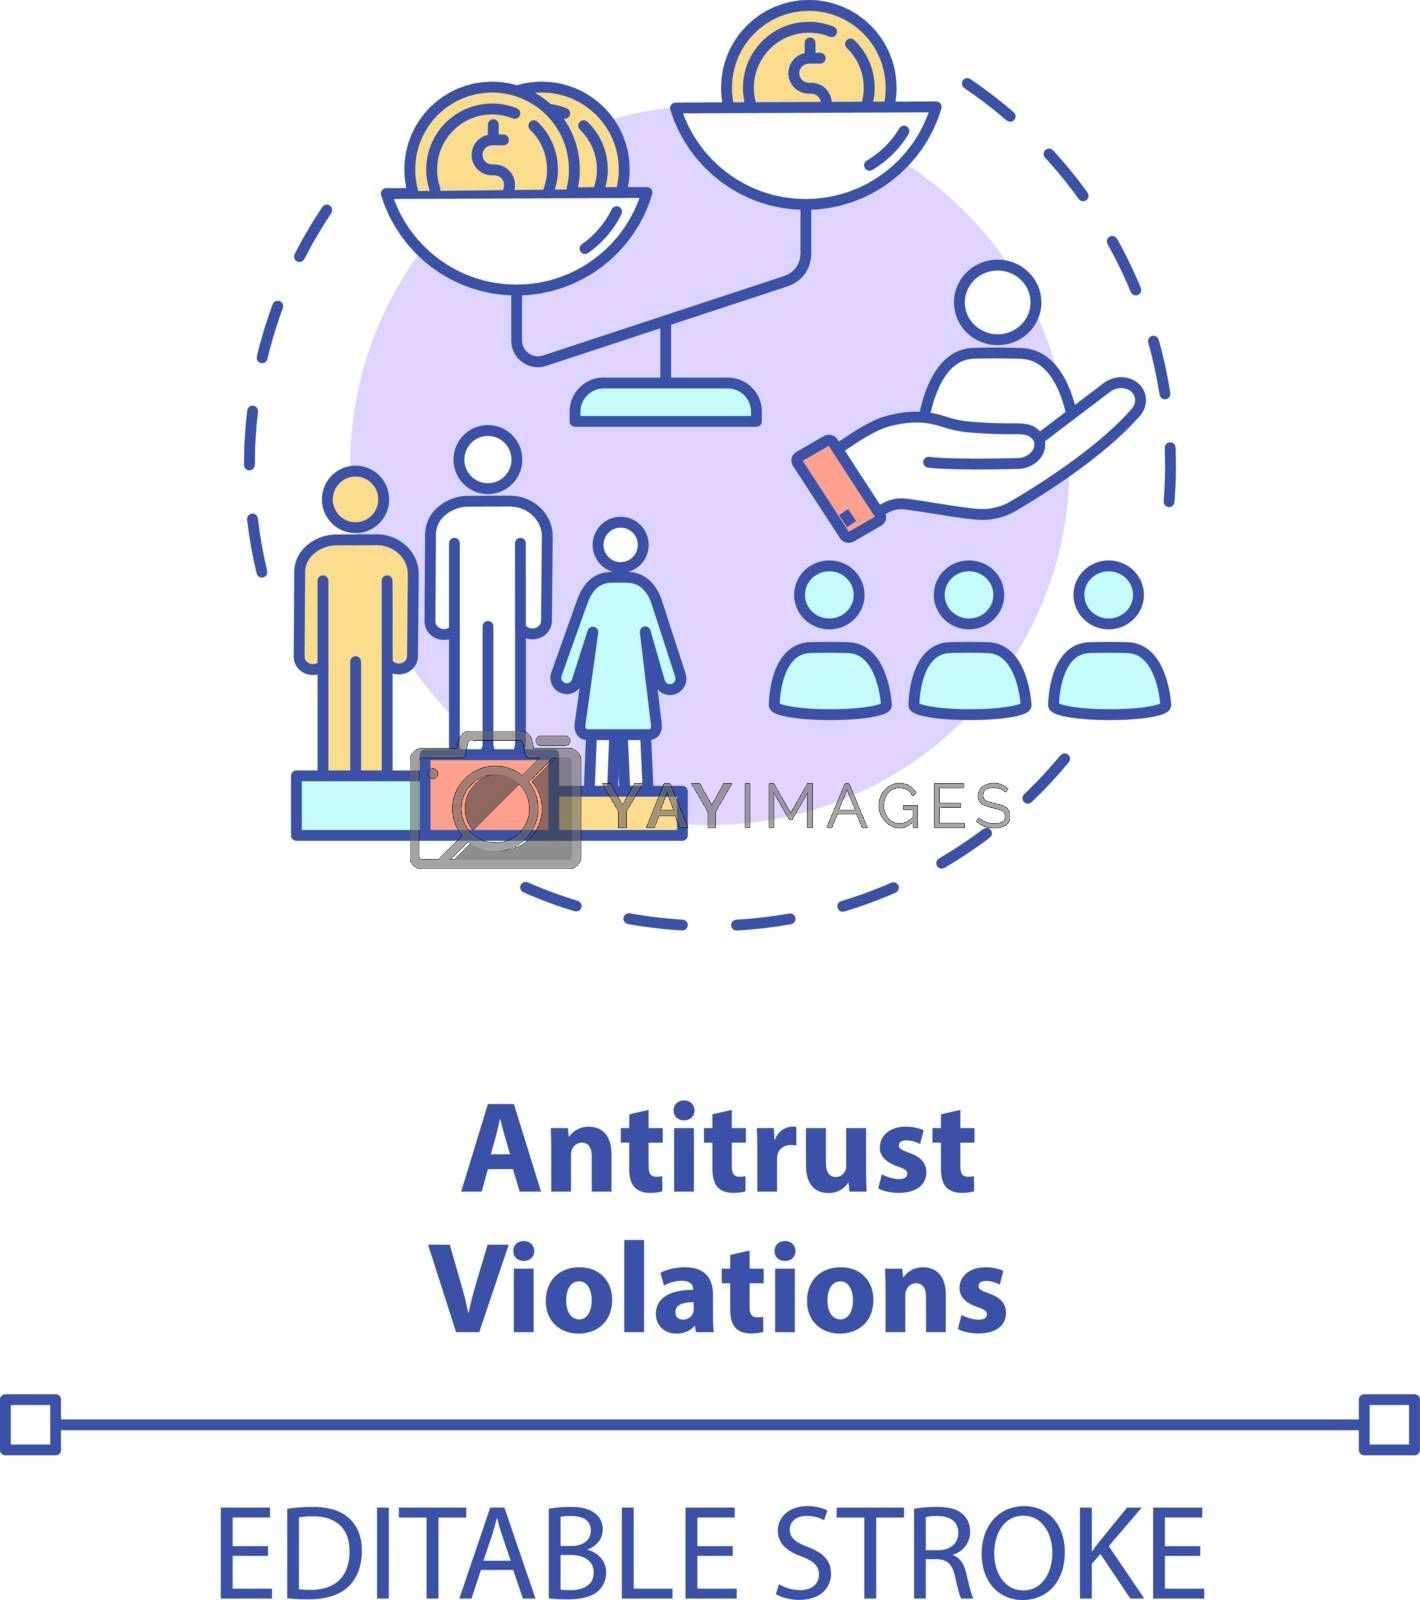 Antitrust violations concept icon. Anti competitive regulation. US common corporate crime. Competitive law idea thin line illustration. Vector isolated outline RGB color drawing. Editable stroke